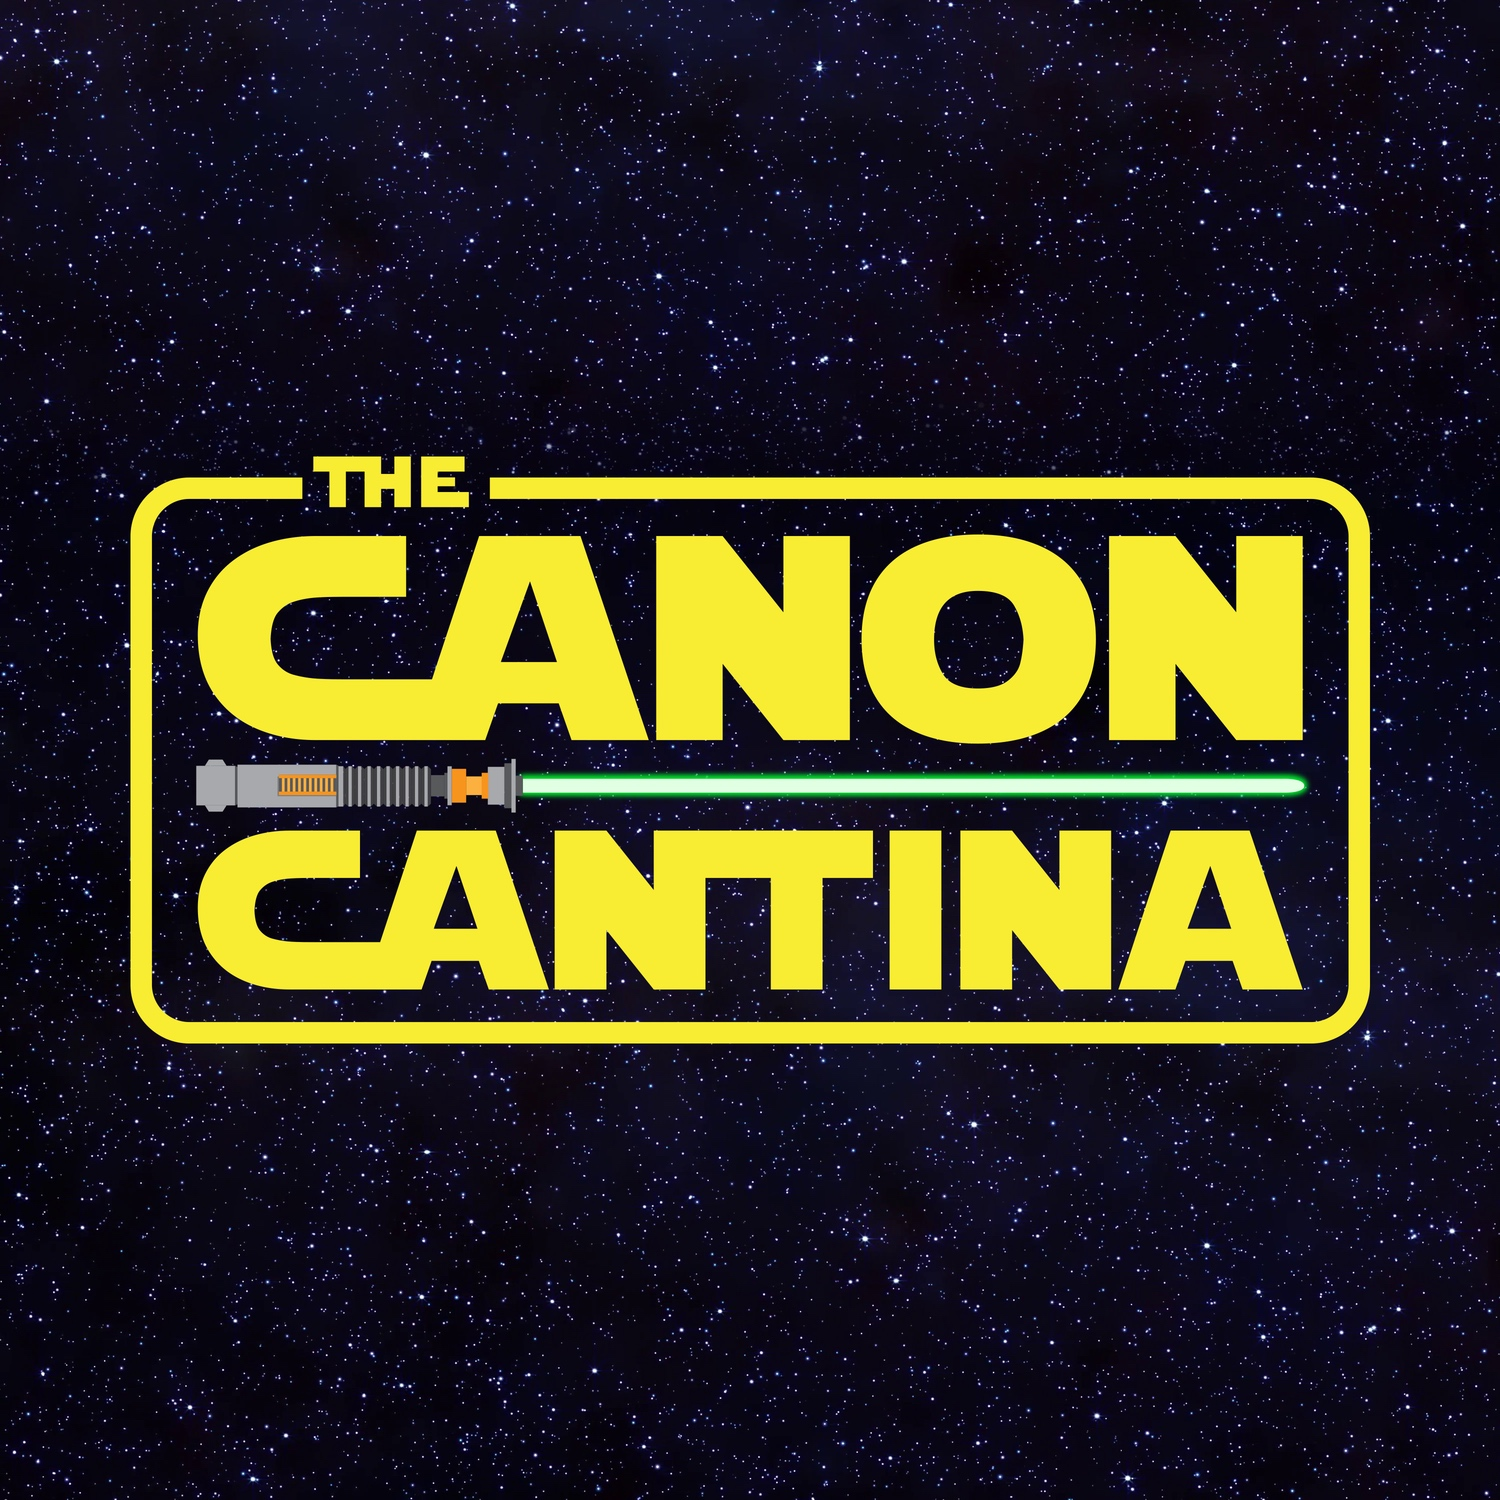 The Canon Cantina